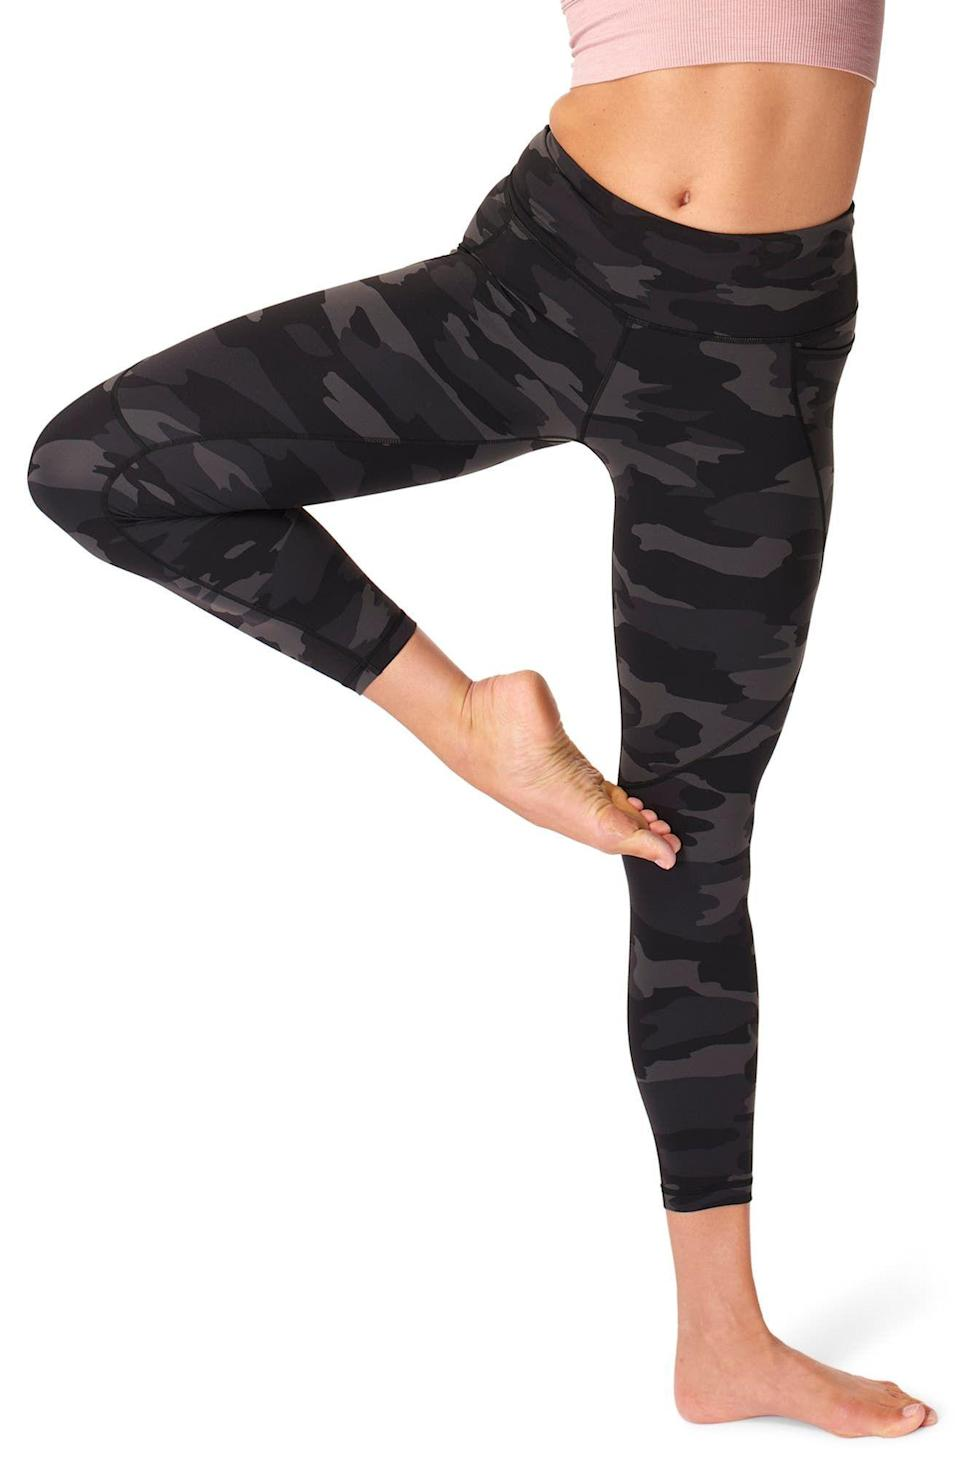 """<p><strong>Sweaty Betty </strong></p><p>Nordstrom</p><p><a href=""""https://go.redirectingat.com?id=74968X1596630&url=https%3A%2F%2Fwww.nordstrom.com%2Fs%2Fsweaty-betty-power-pocket-workout-ankle-leggings%2F5696426&sref=https%3A%2F%2Fwww.marieclaire.com%2Ffashion%2Fg35090742%2Fnordstrom-half-yearly-sale-2020%2F"""" rel=""""nofollow noopener"""" target=""""_blank"""" data-ylk=""""slk:Shop Now"""" class=""""link rapid-noclick-resp"""">Shop Now</a></p><p><strong><del>$100</del> $60 (40% off)</strong></p>"""